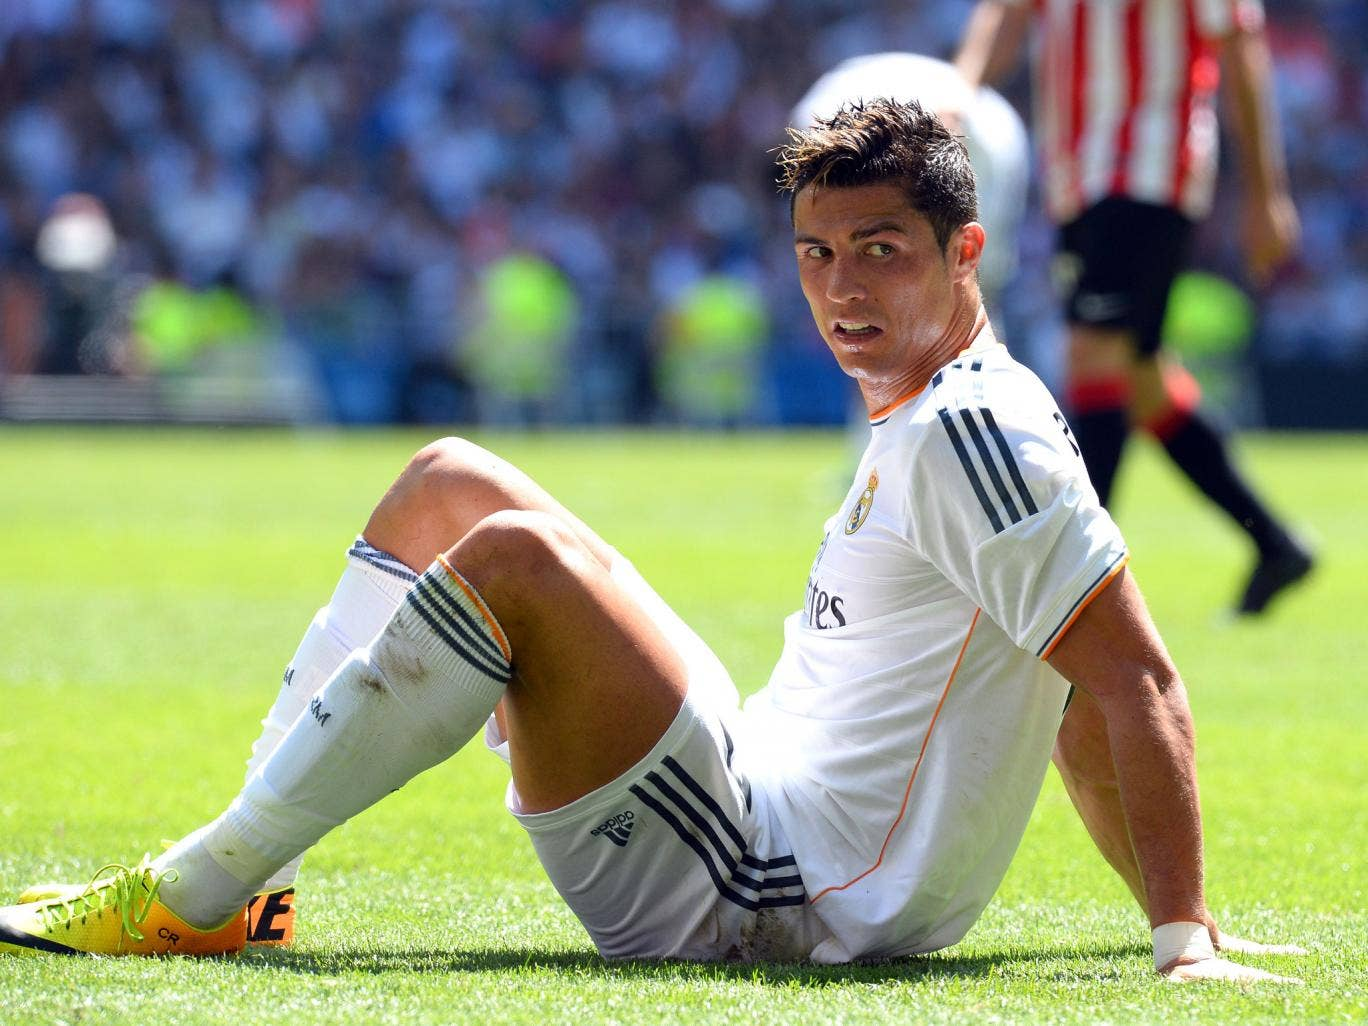 Cristiano Ronaldo has admitted his anger at Mesut Ozil's sale from Real Madrid